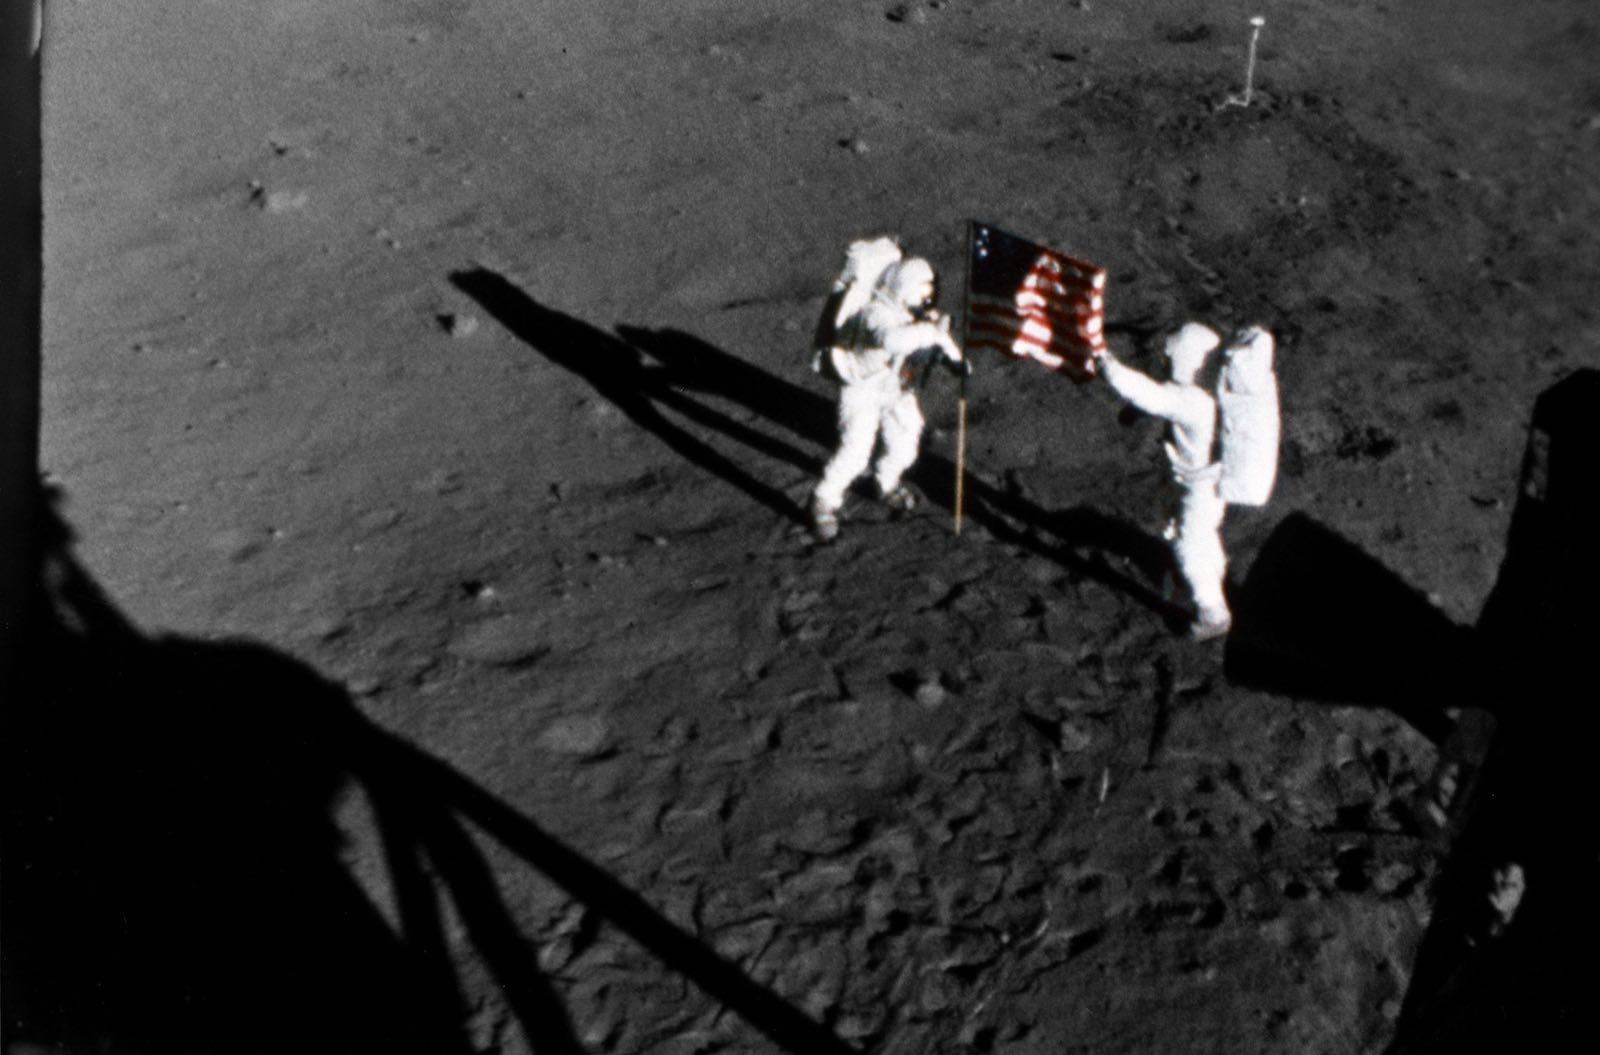 Neil Armstrong (left) and Buzz Aldrin unfurl the US flag on the surface of the Moon (Photo: NASA Johnson/Flickr)